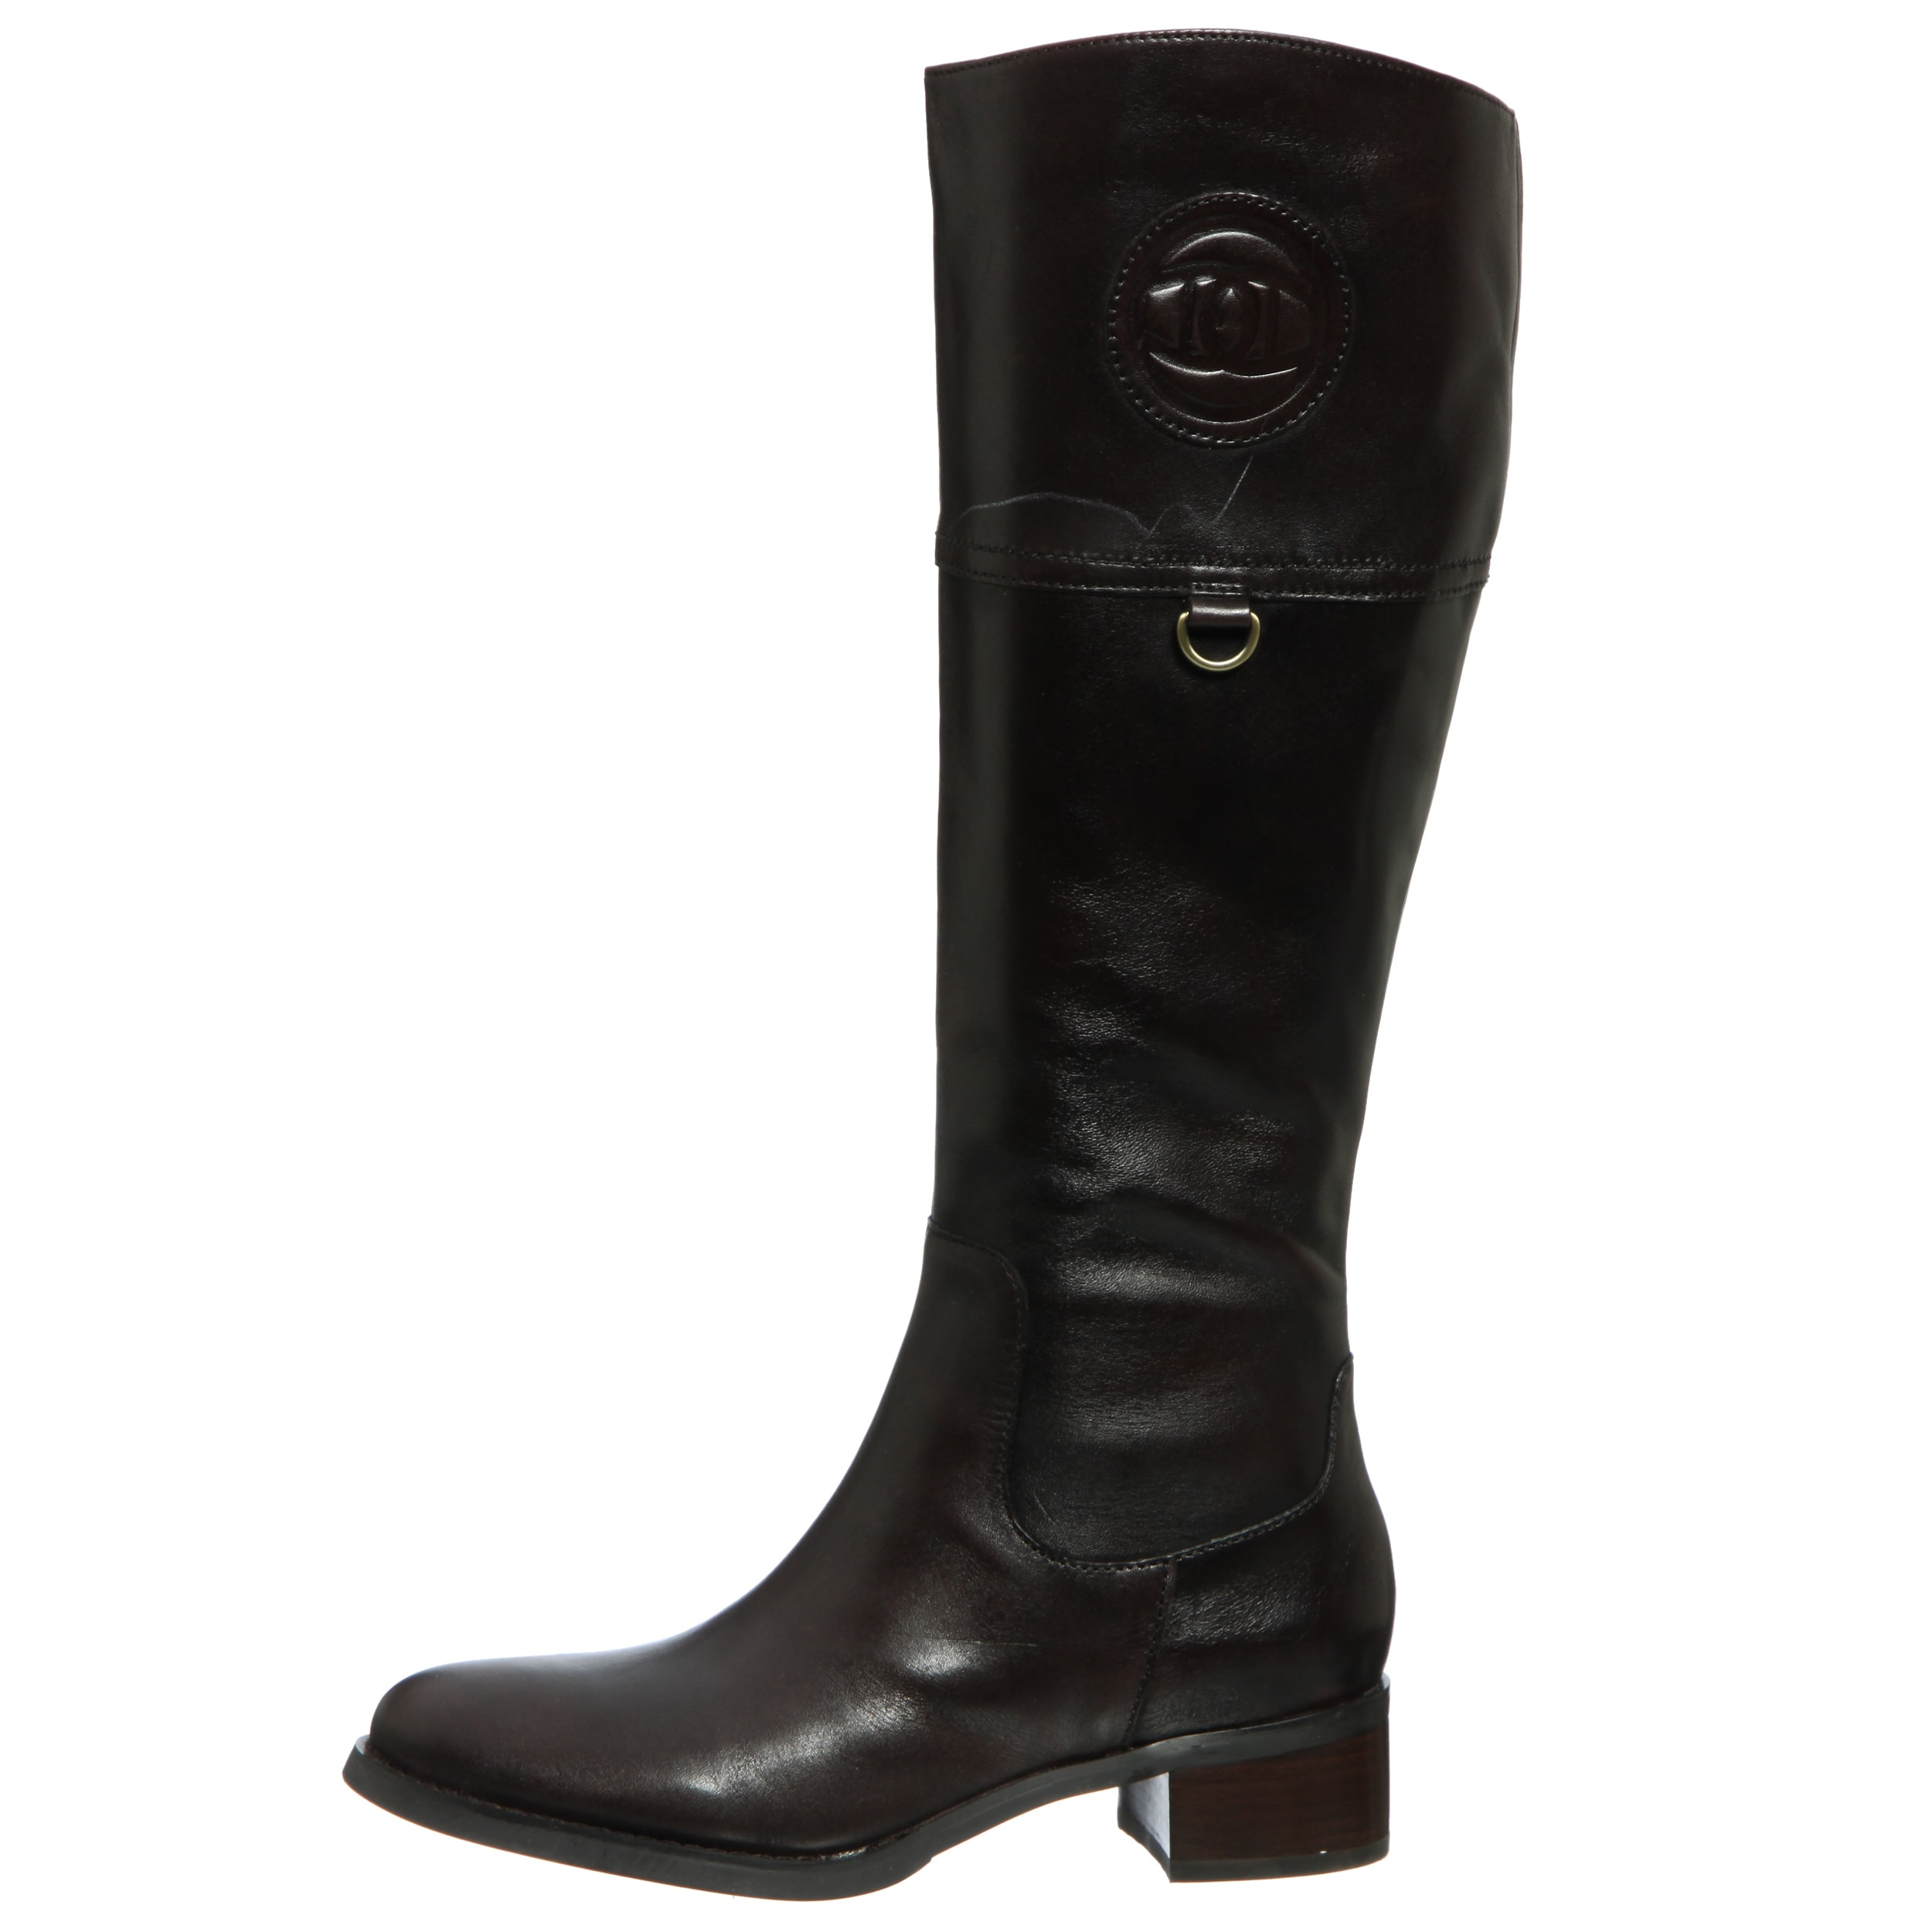 083dc87bcfc Etienne Aigner Women's 'Chastity' Riding Boots